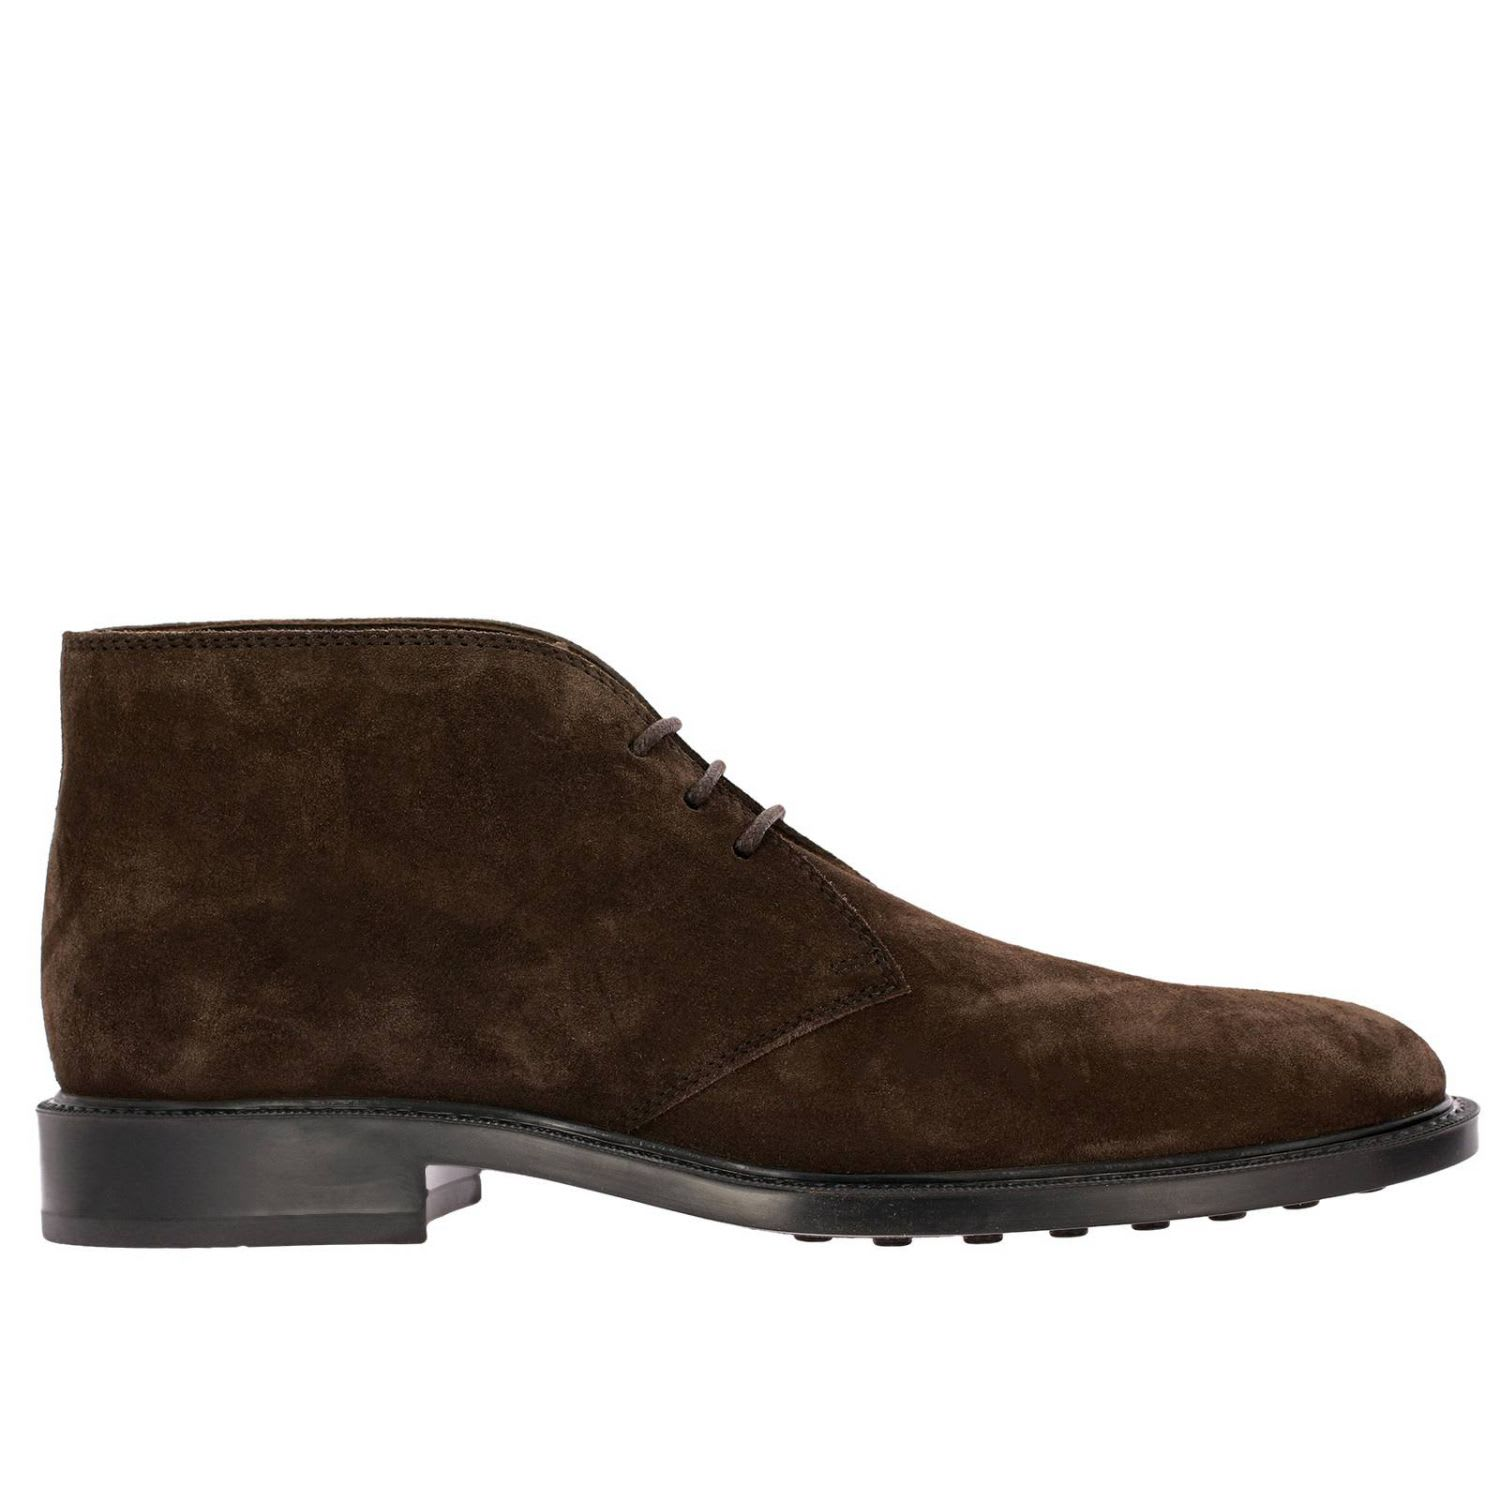 Tods Chukka Boots Tods Lace-up Suede Chukka Boots With Rubber Bottom